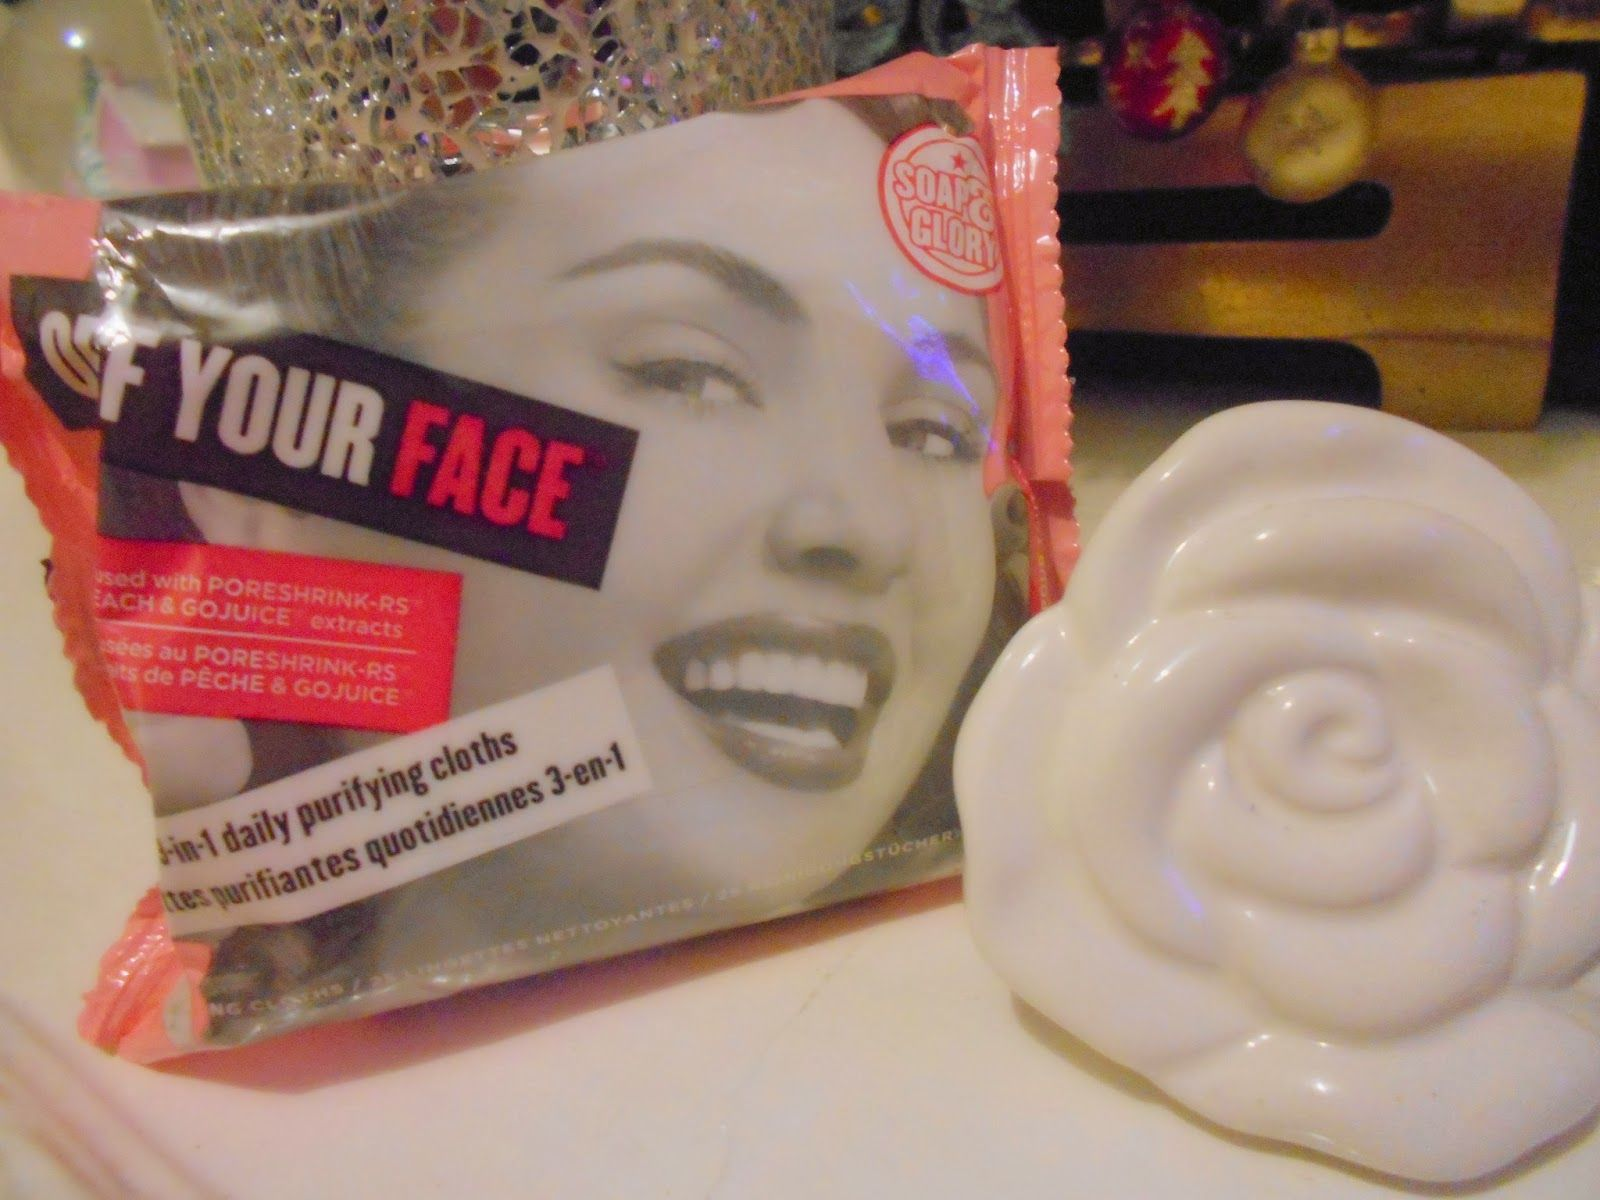 Soap & Glory Off Your Face Wipes Review Soap, Wipes